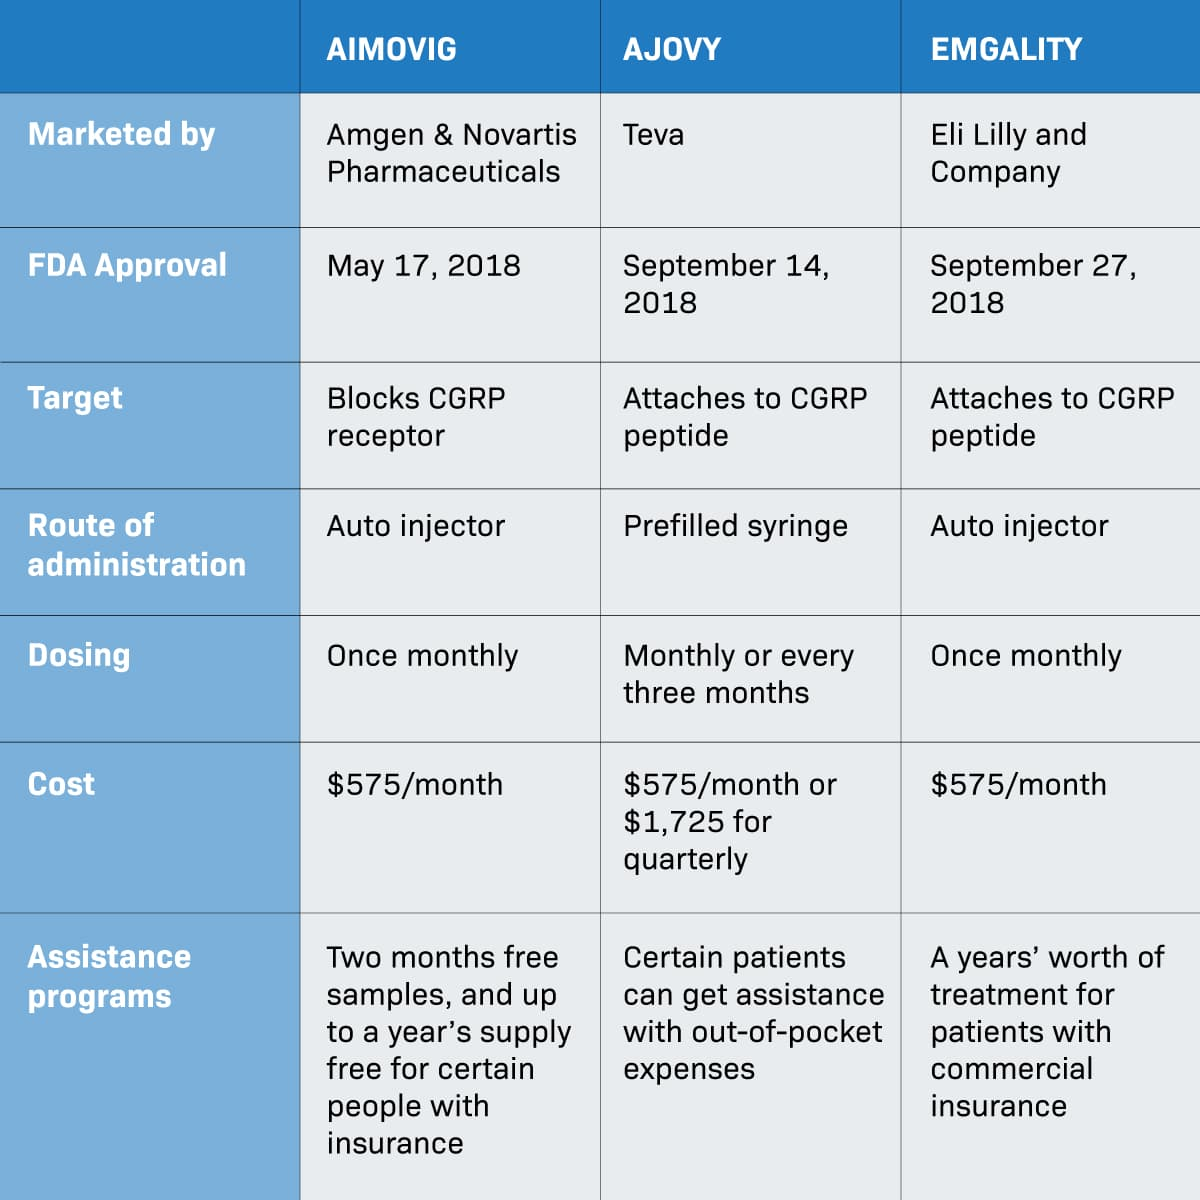 Chart of Similarities and differences of CGRP drugs